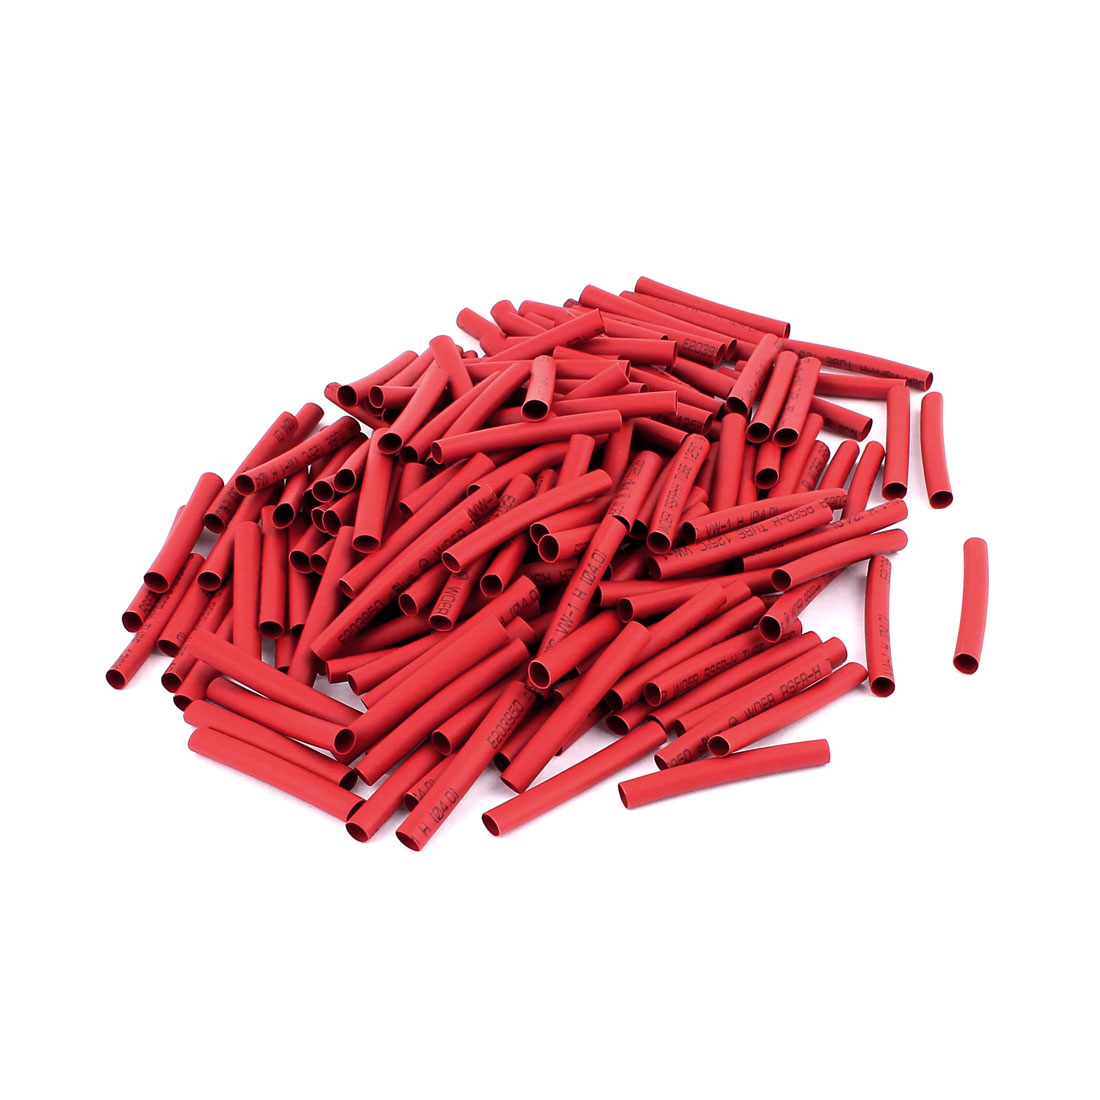 40mm Length Polyolefin Heat Shrink Wrap Tubing Electric Cable Sleeve Red 200Pcs